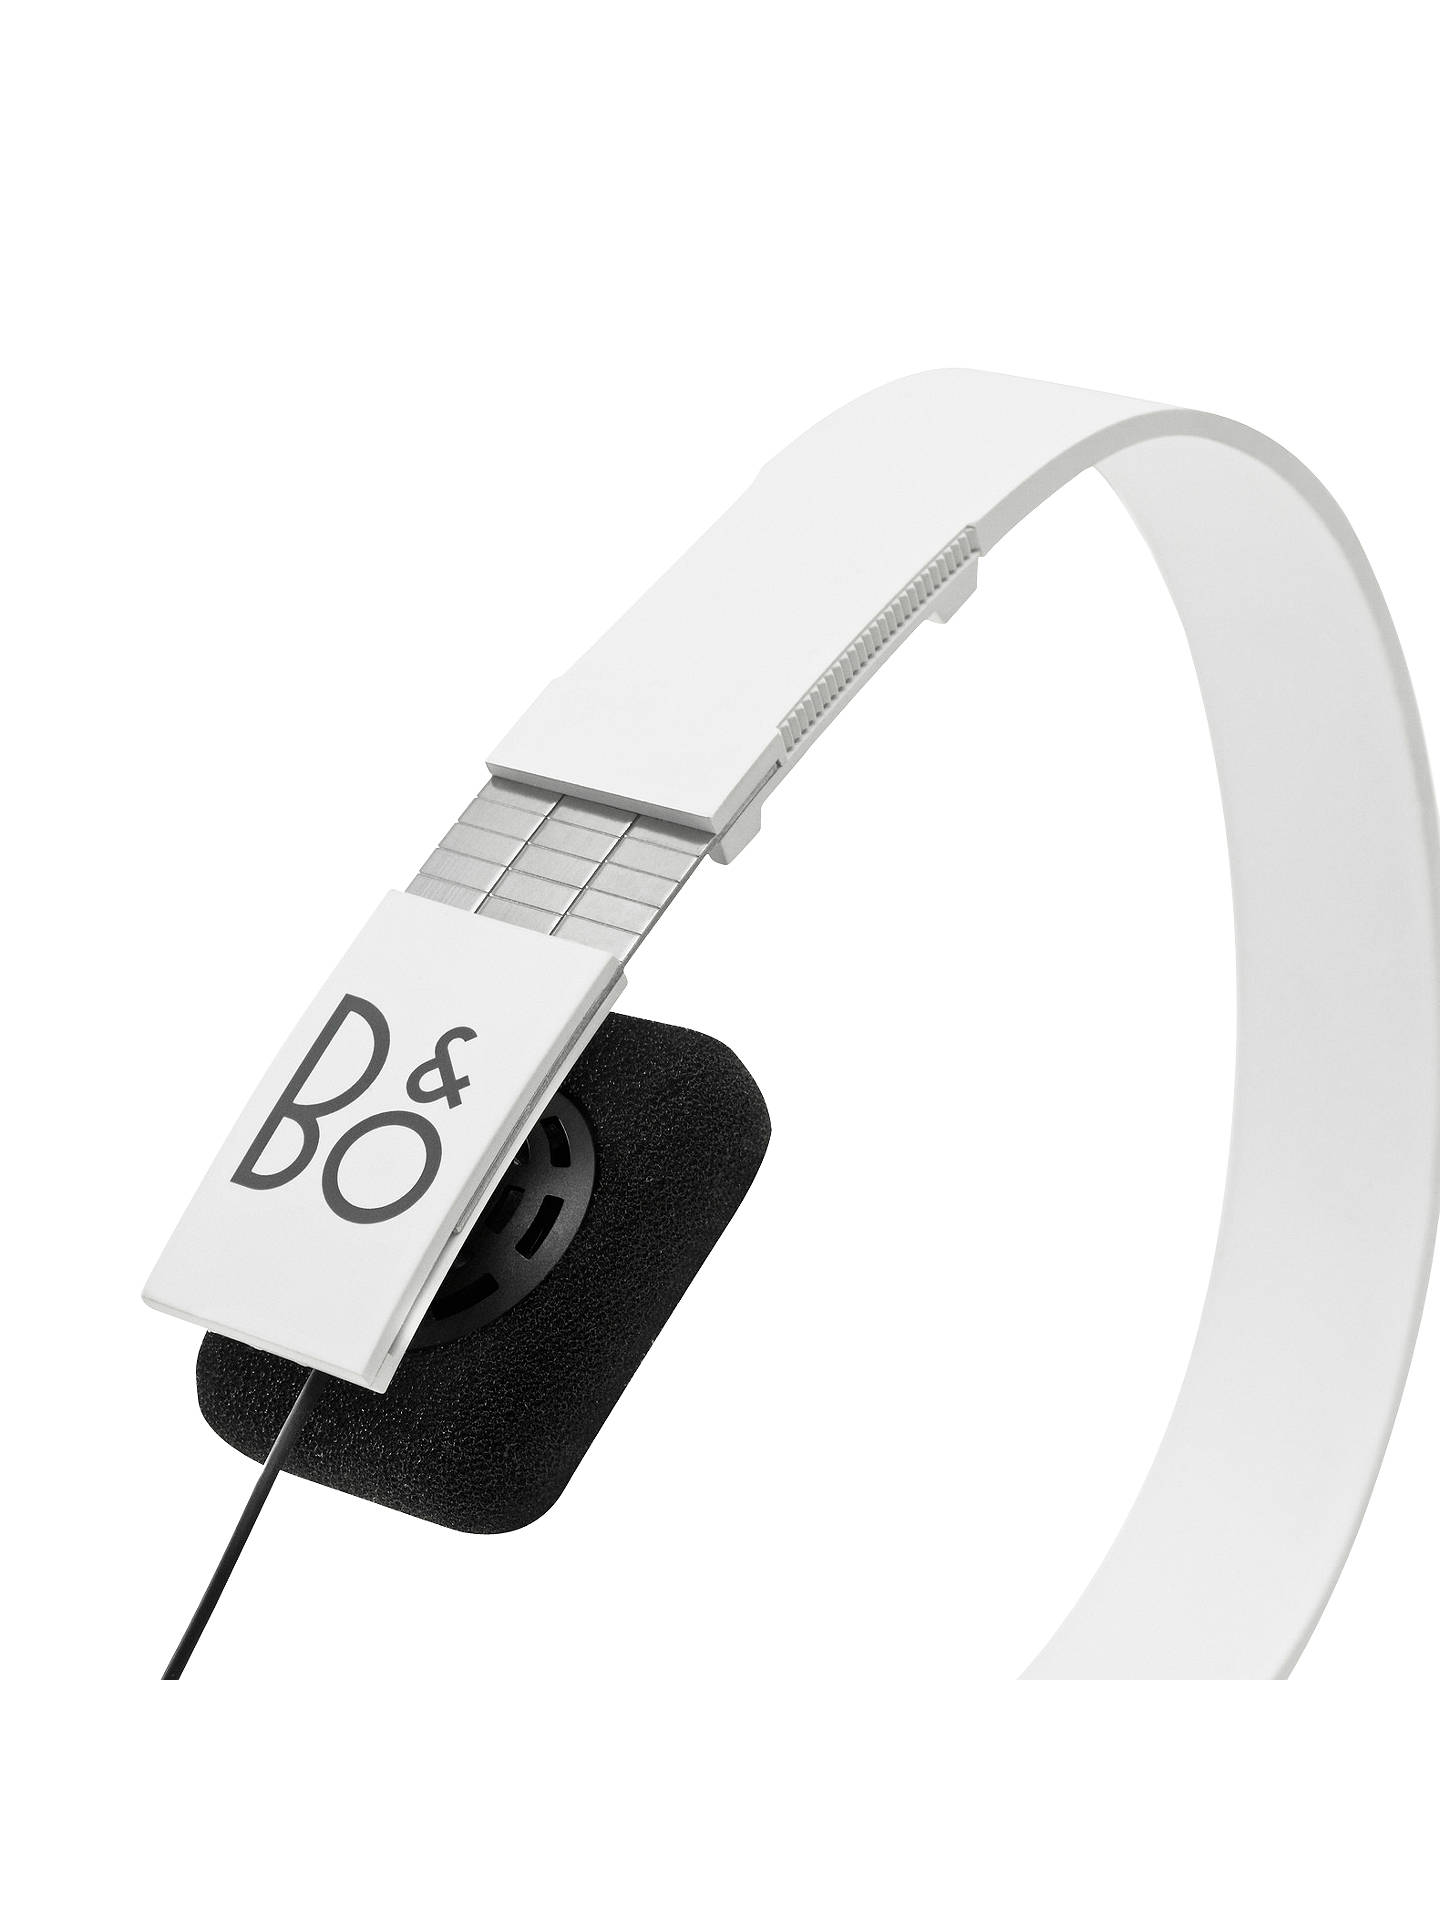 BuyBang & Olufsen Beoplay Form 2i On-Ear Headphones with Mic/Remote, White Online at johnlewis.com